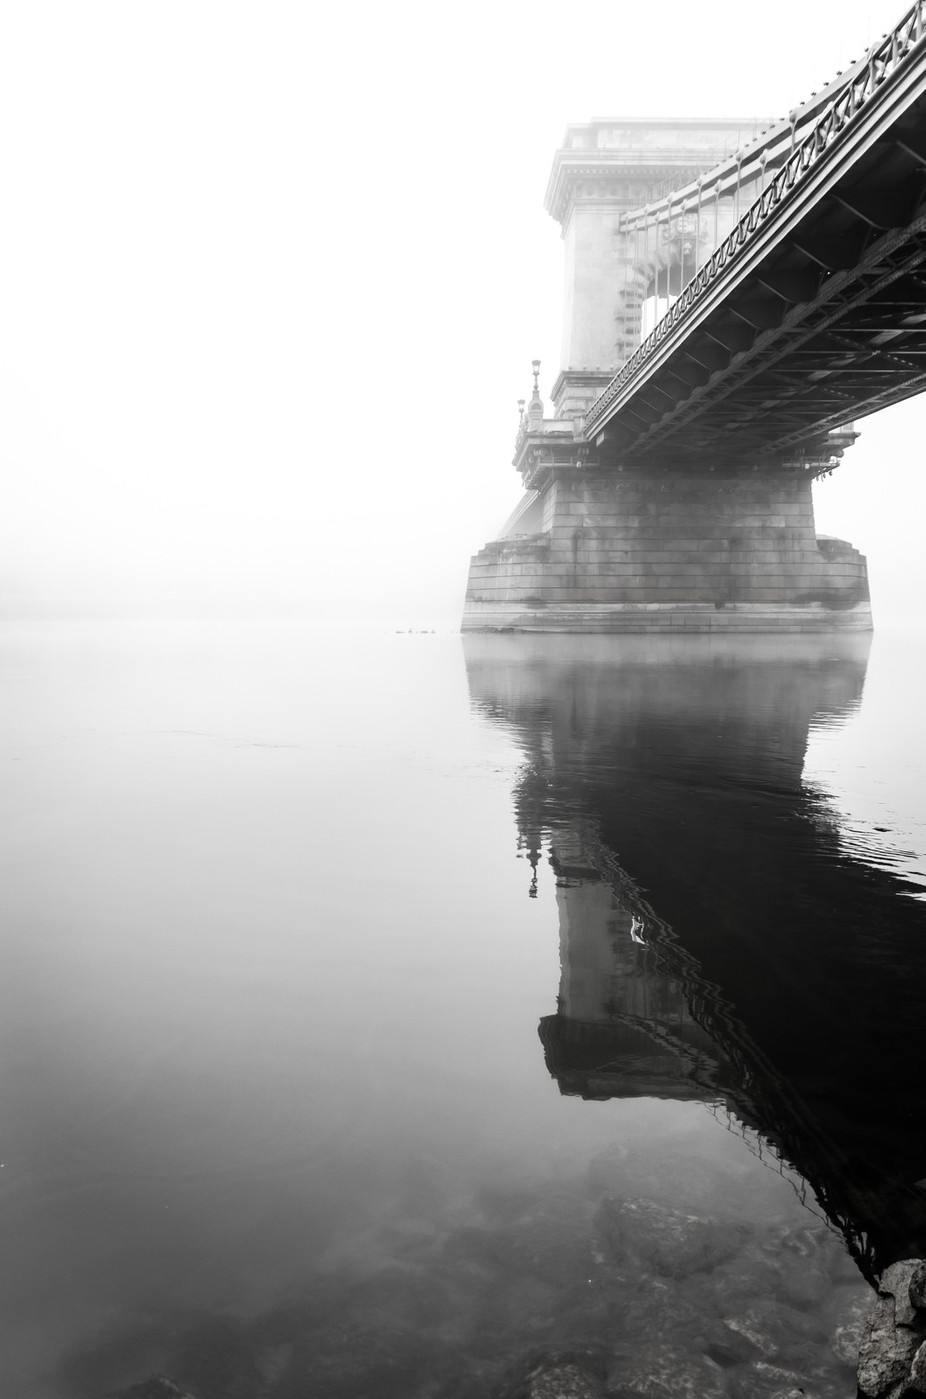 Bridge to the nothing by Adizoli89 - Mysterious Shots Photo Contest